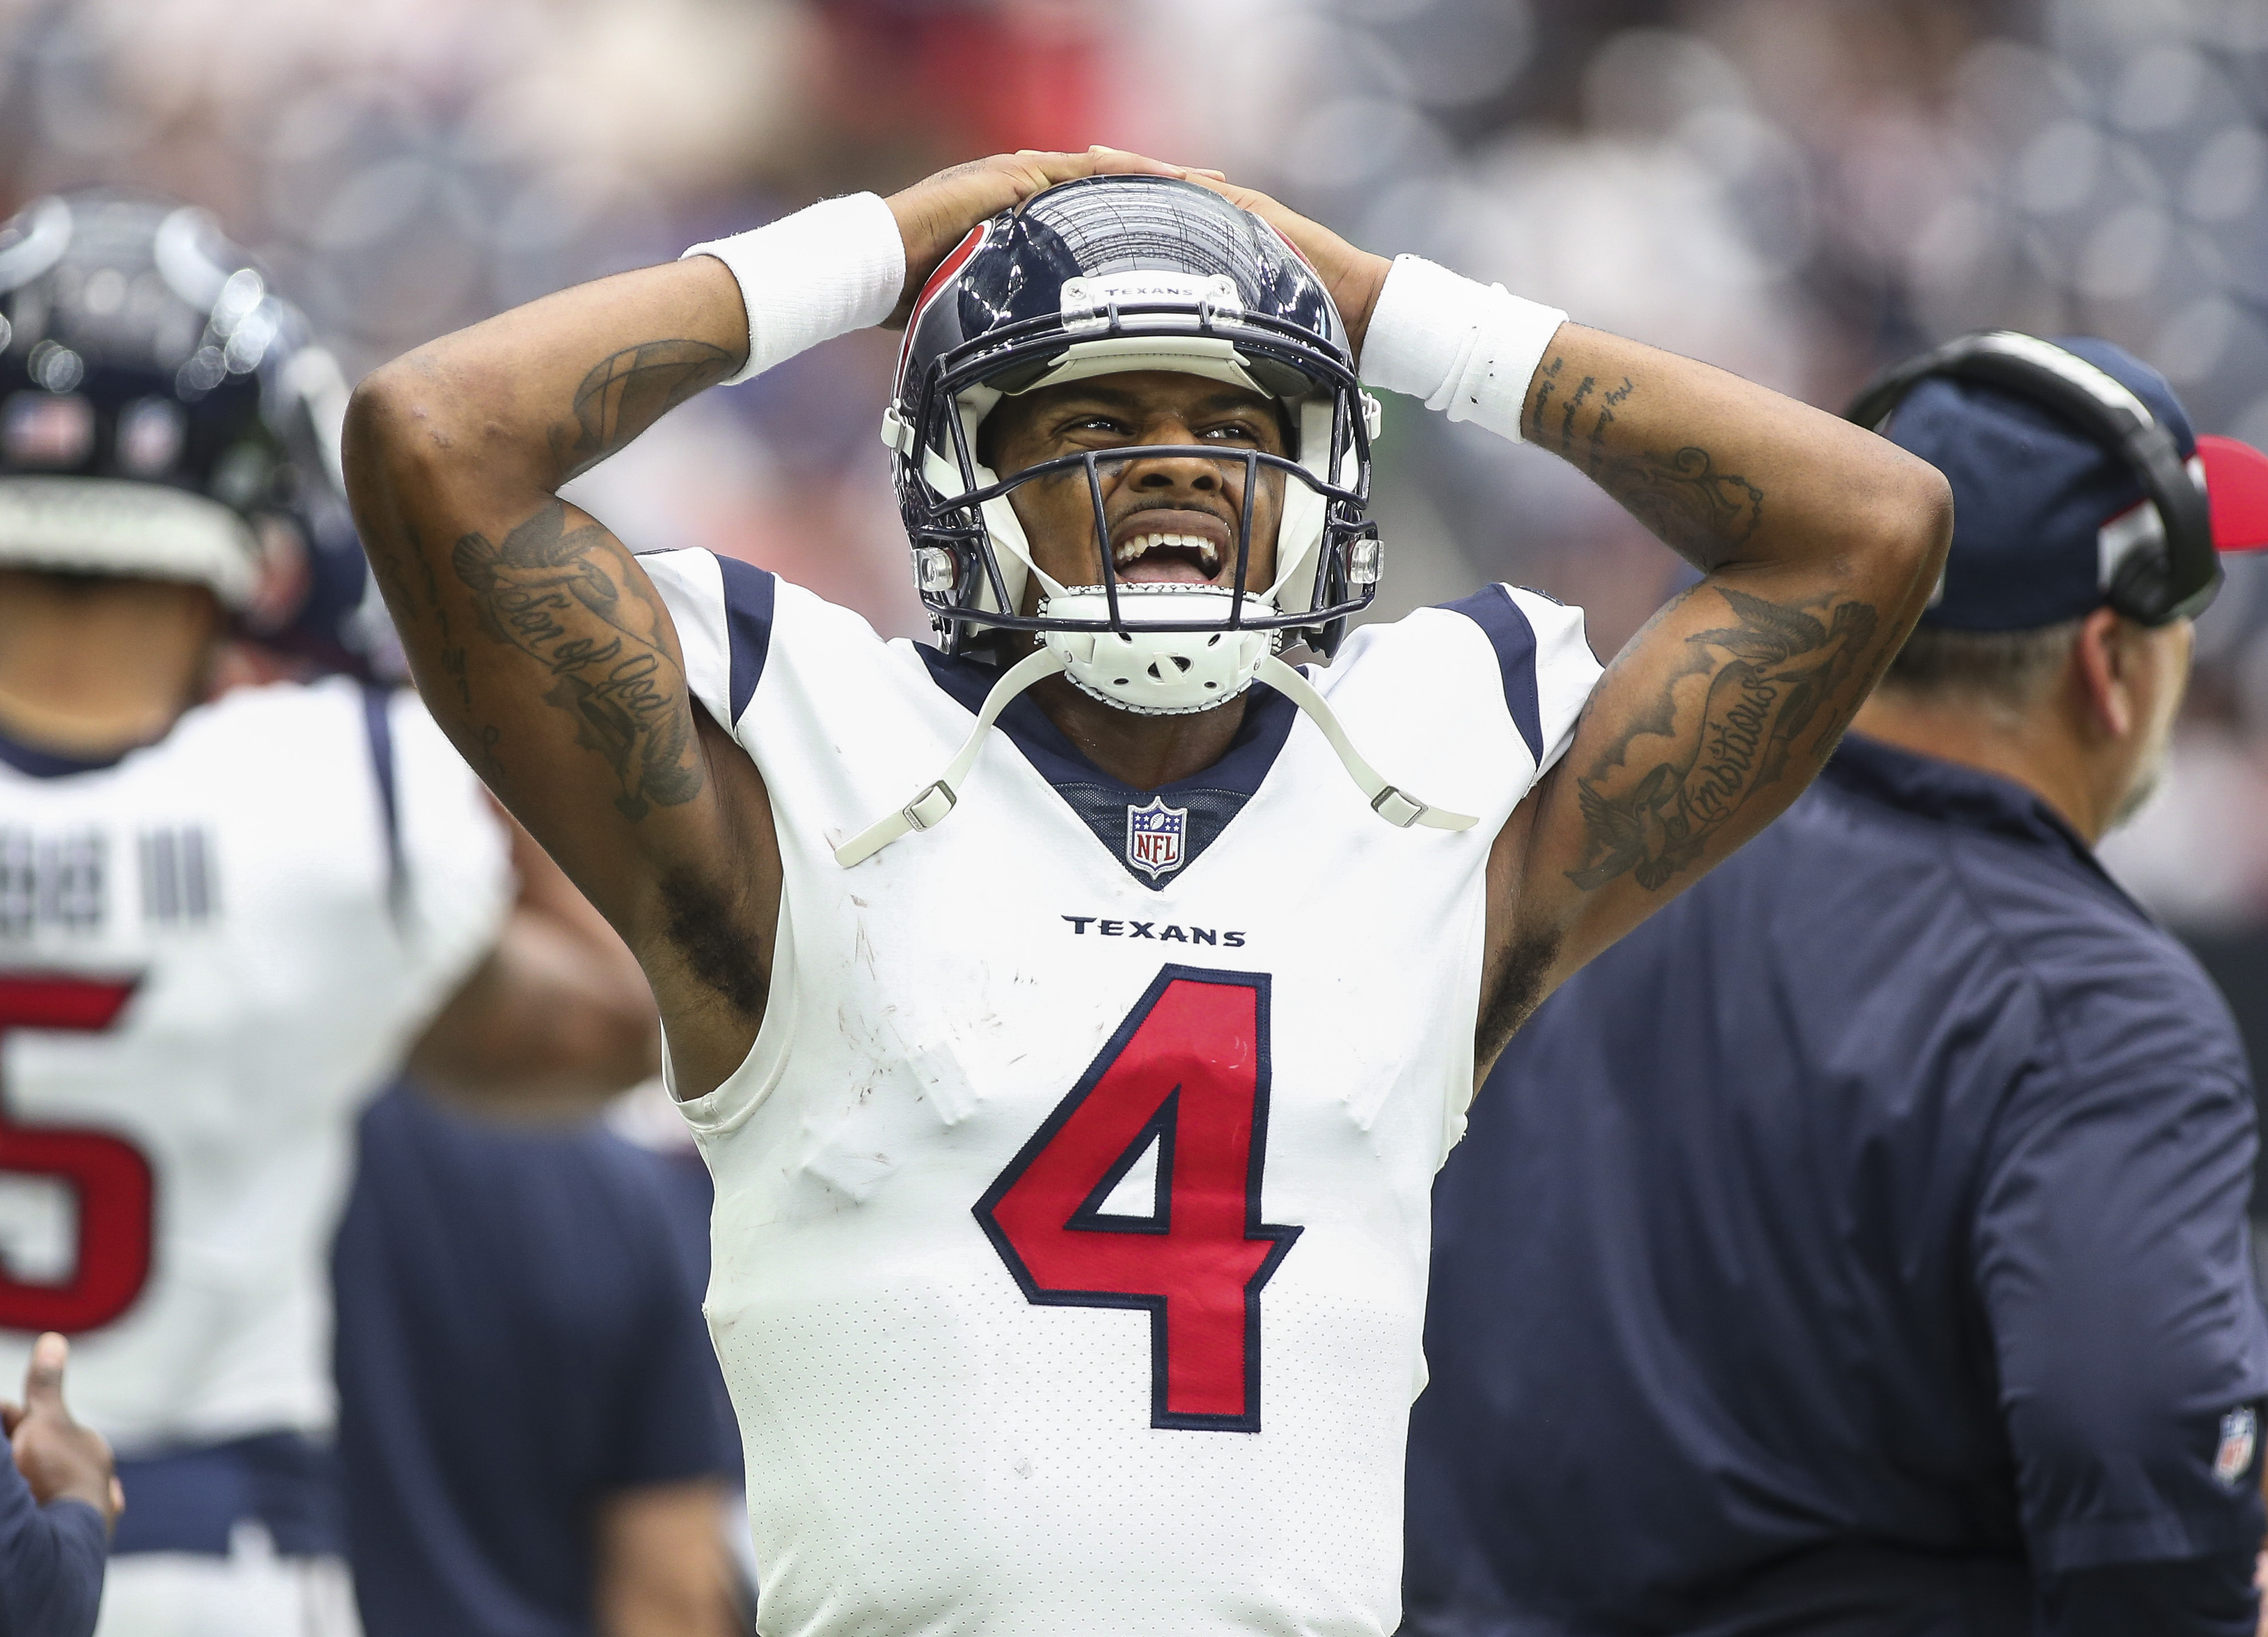 Even QB Deshaun Watson opposes new roughing the passer rule